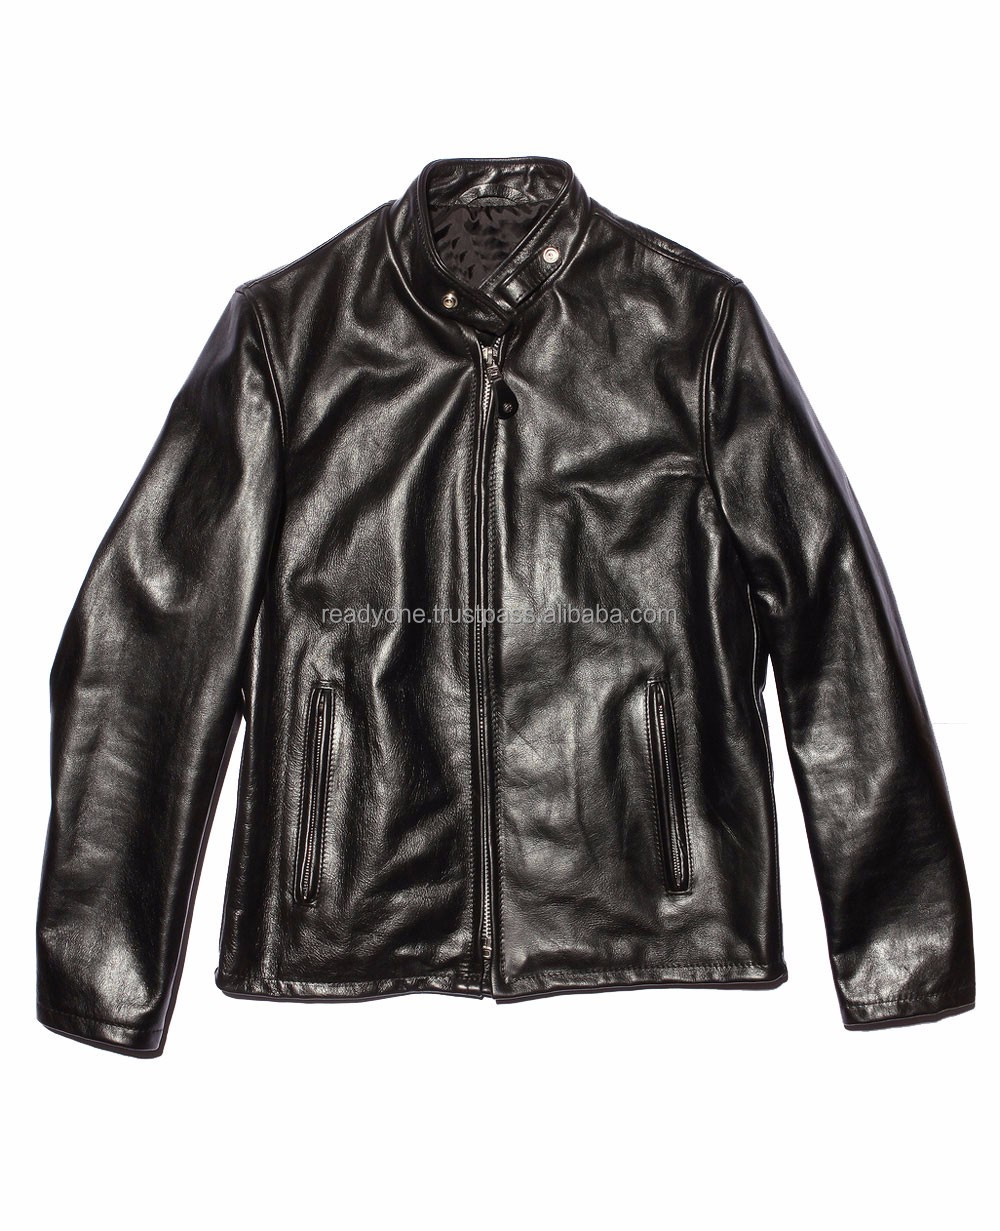 Alibaba online selling sexy fashionable wholesale mens quilted motorcycle